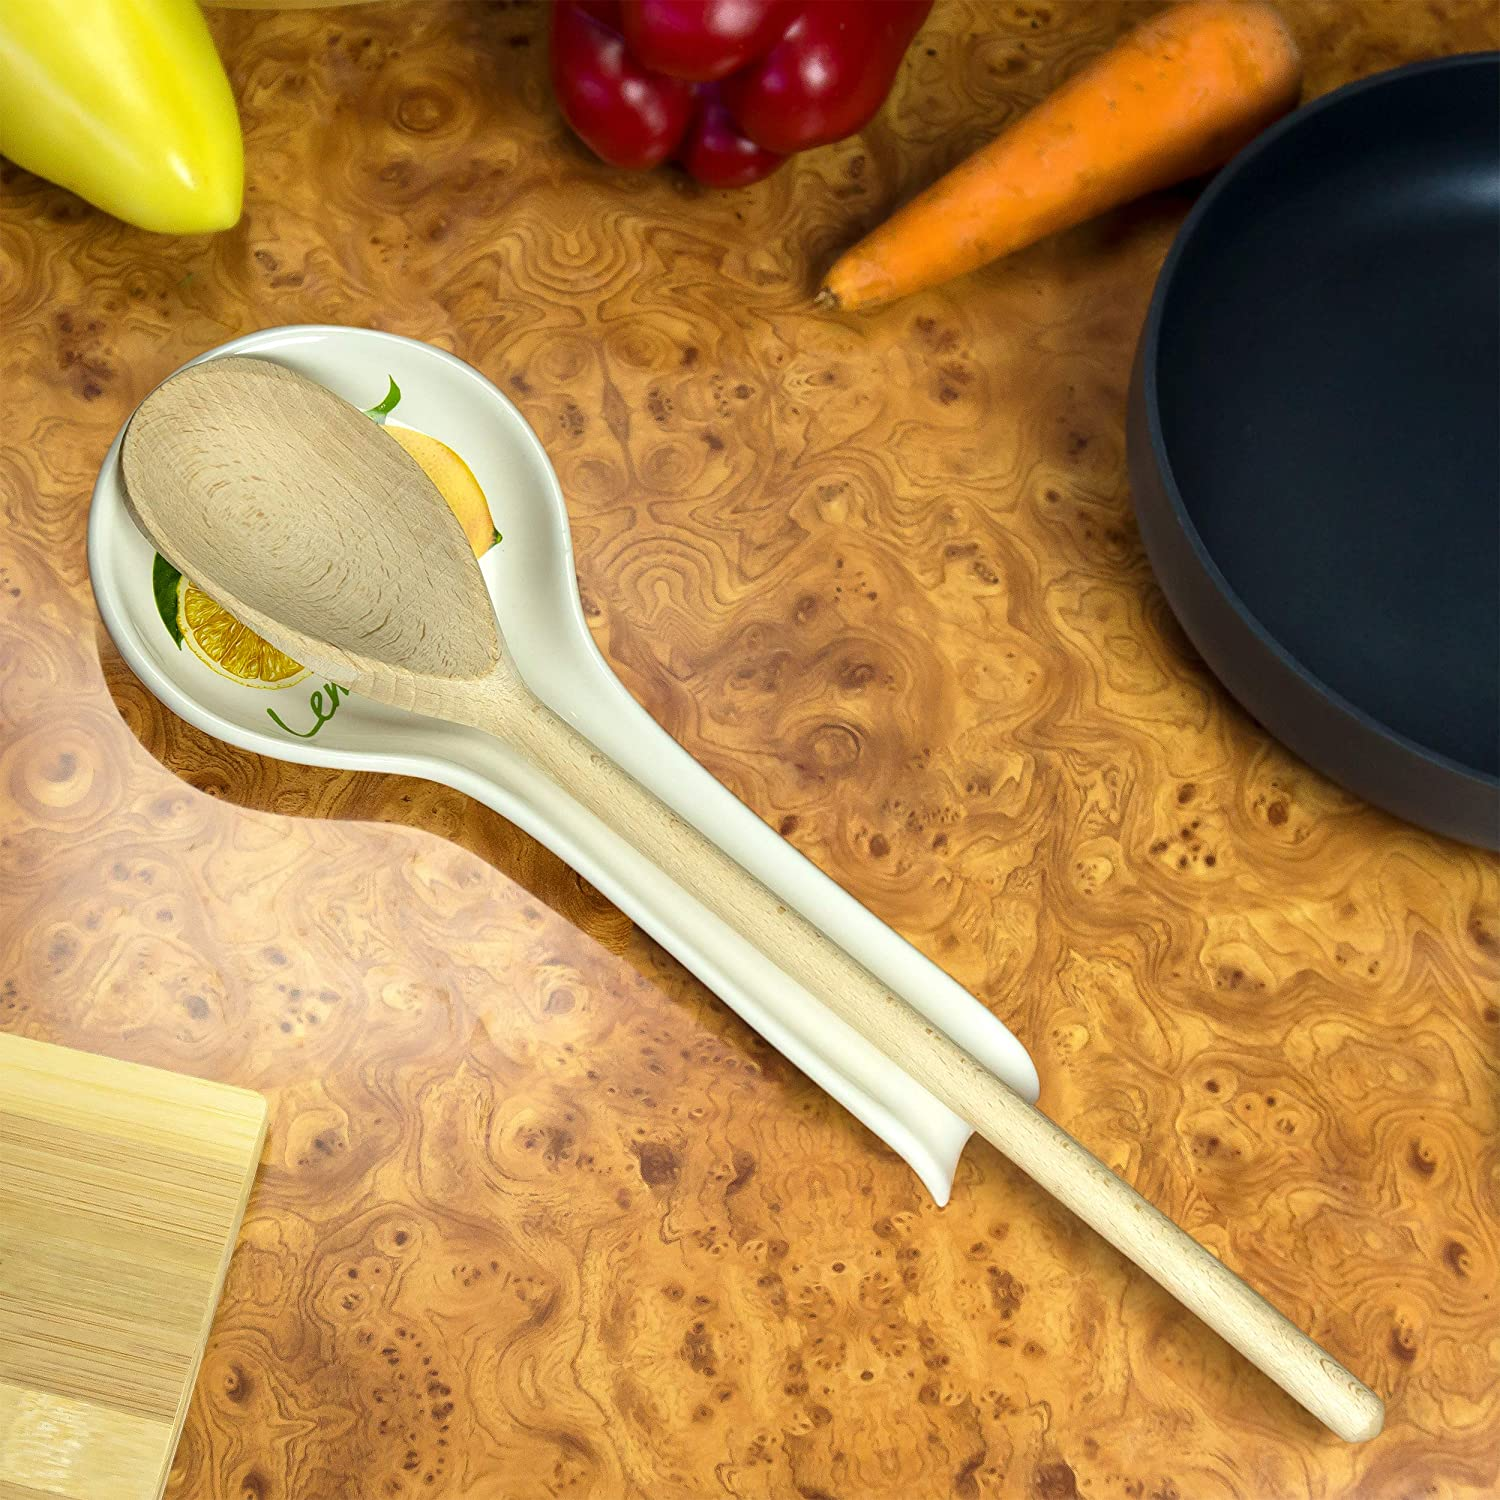 Decorative Ceramic Spoon Rest for Kitchen Stove Top with Wooden Spoon for Cooking Useful Kitchen Gift Set for Women Men Who Likes to Cook